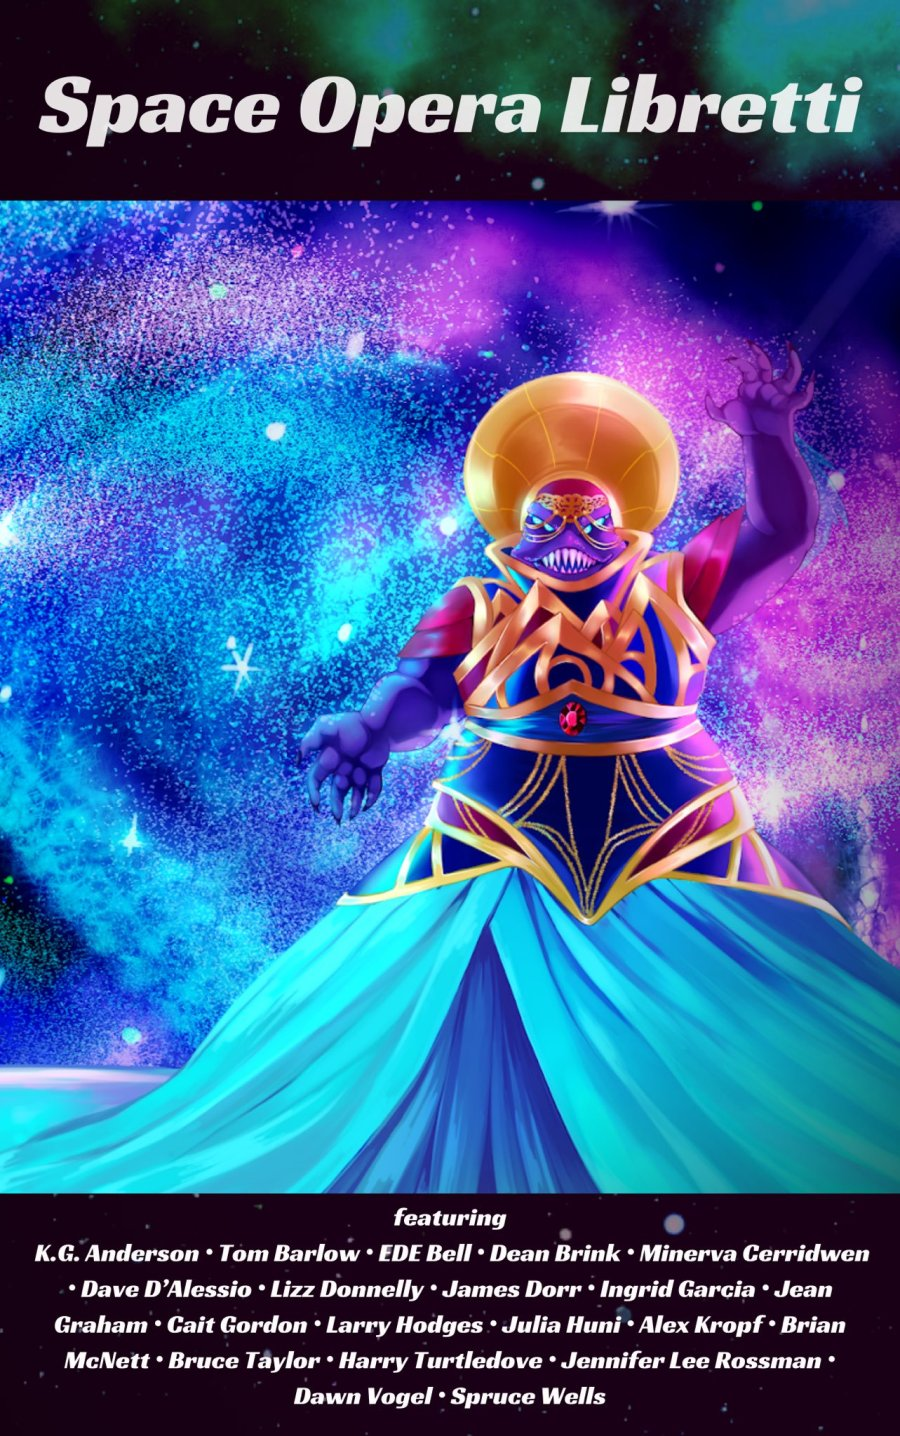 A purple alien dressed in a lavish blue, purple, and gold gown wears a golden headpiece and looks about to deliver the final note through those sharp teeth!